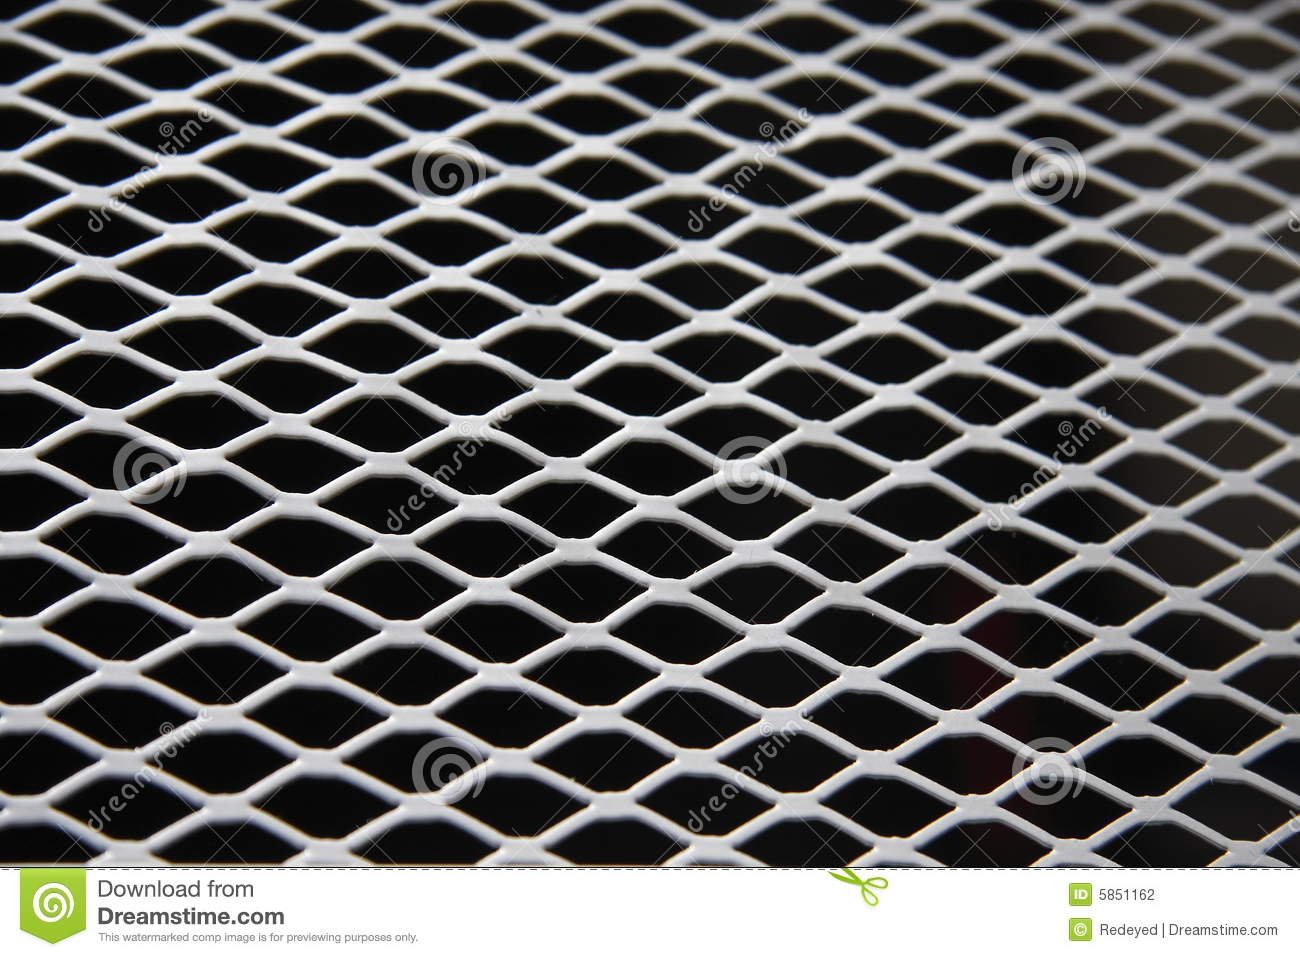 Metal Mesh stock photo. Image of uniform, background